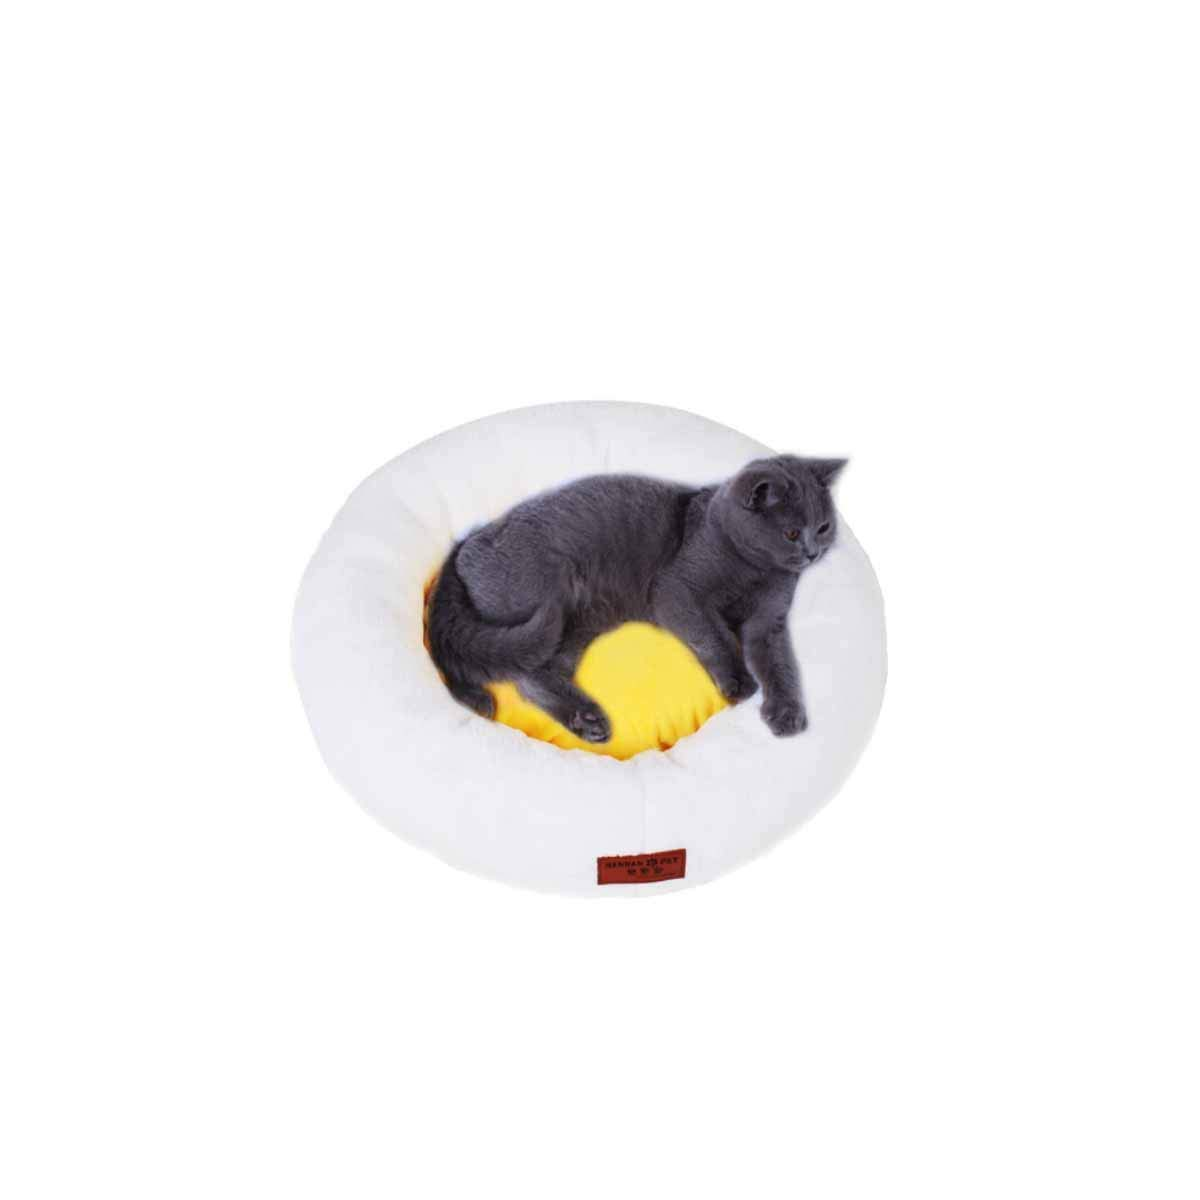 Cat nest, Kennel, Washable Egg Yolk, cat Bed, pet cat mat, cat Sleeping Bag, Four Seasons Universal Kennel, Small Dog mat, Dog Bed, cat Supplies (color   Egg Yellow, Size   L)